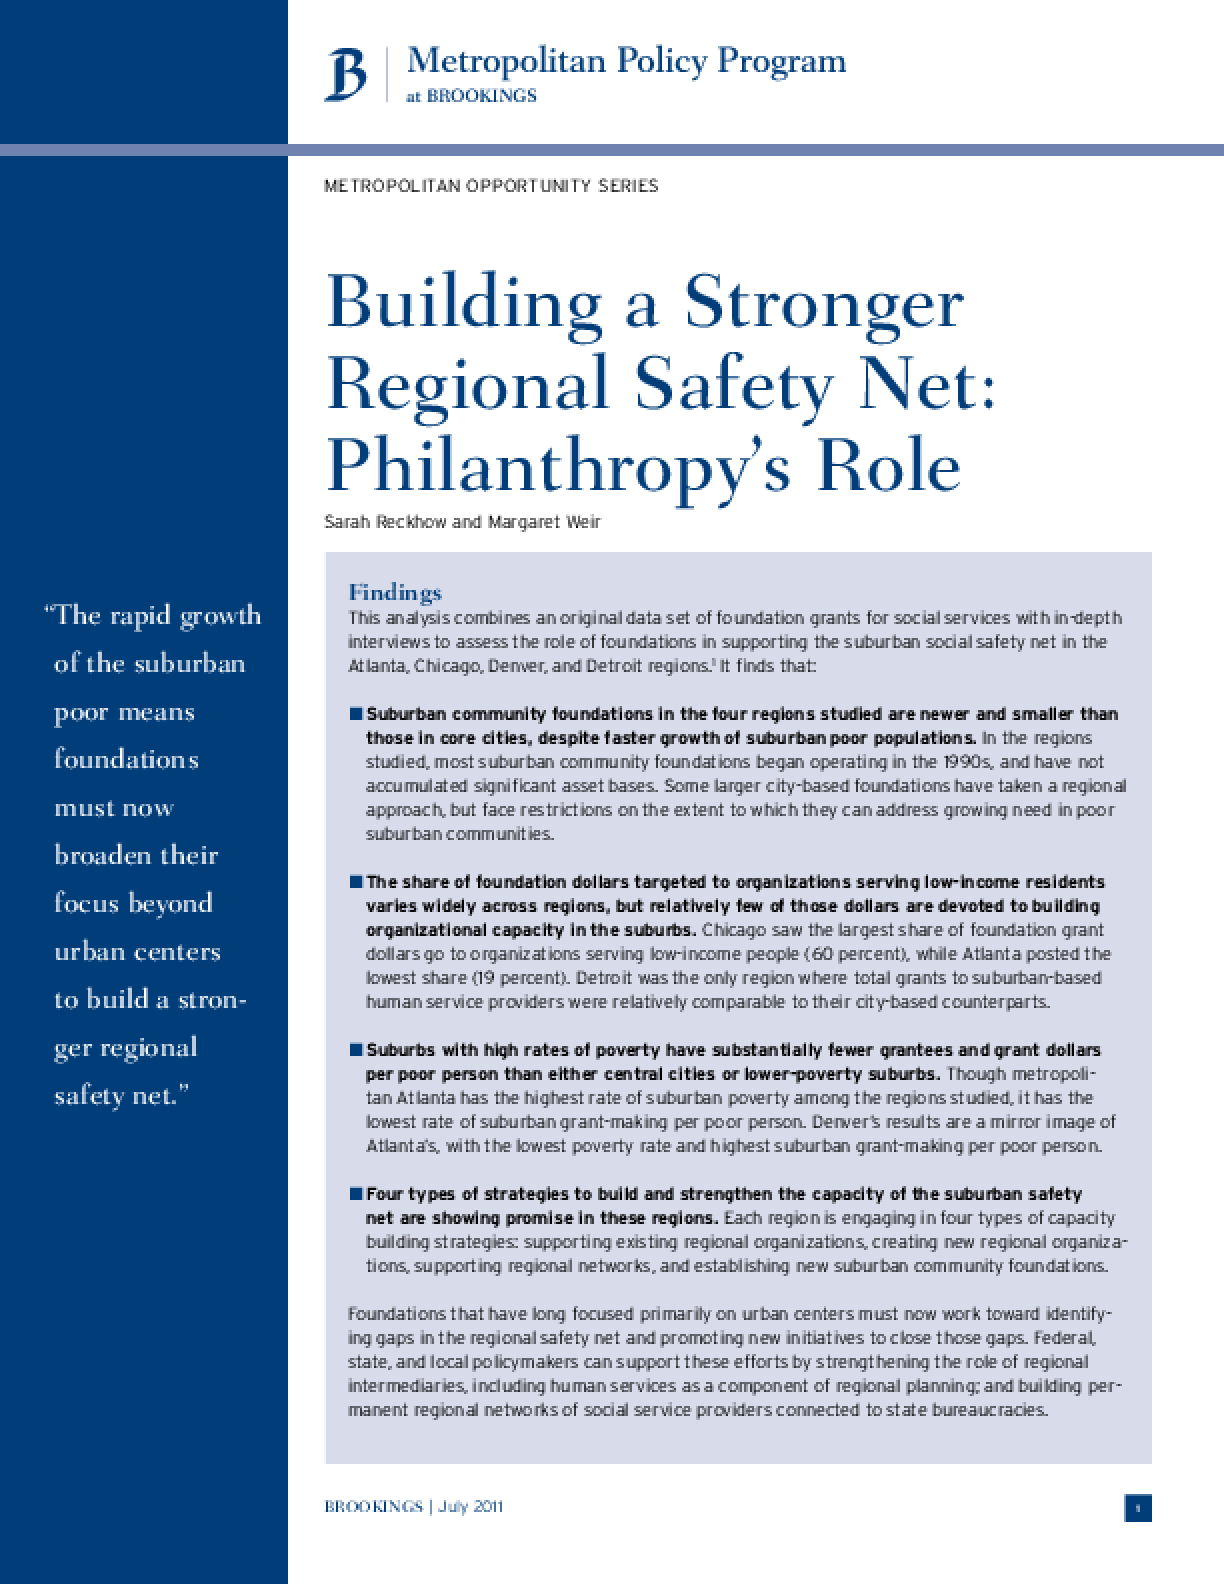 Building a Stronger Regional Safety Net: Philanthropy's Role